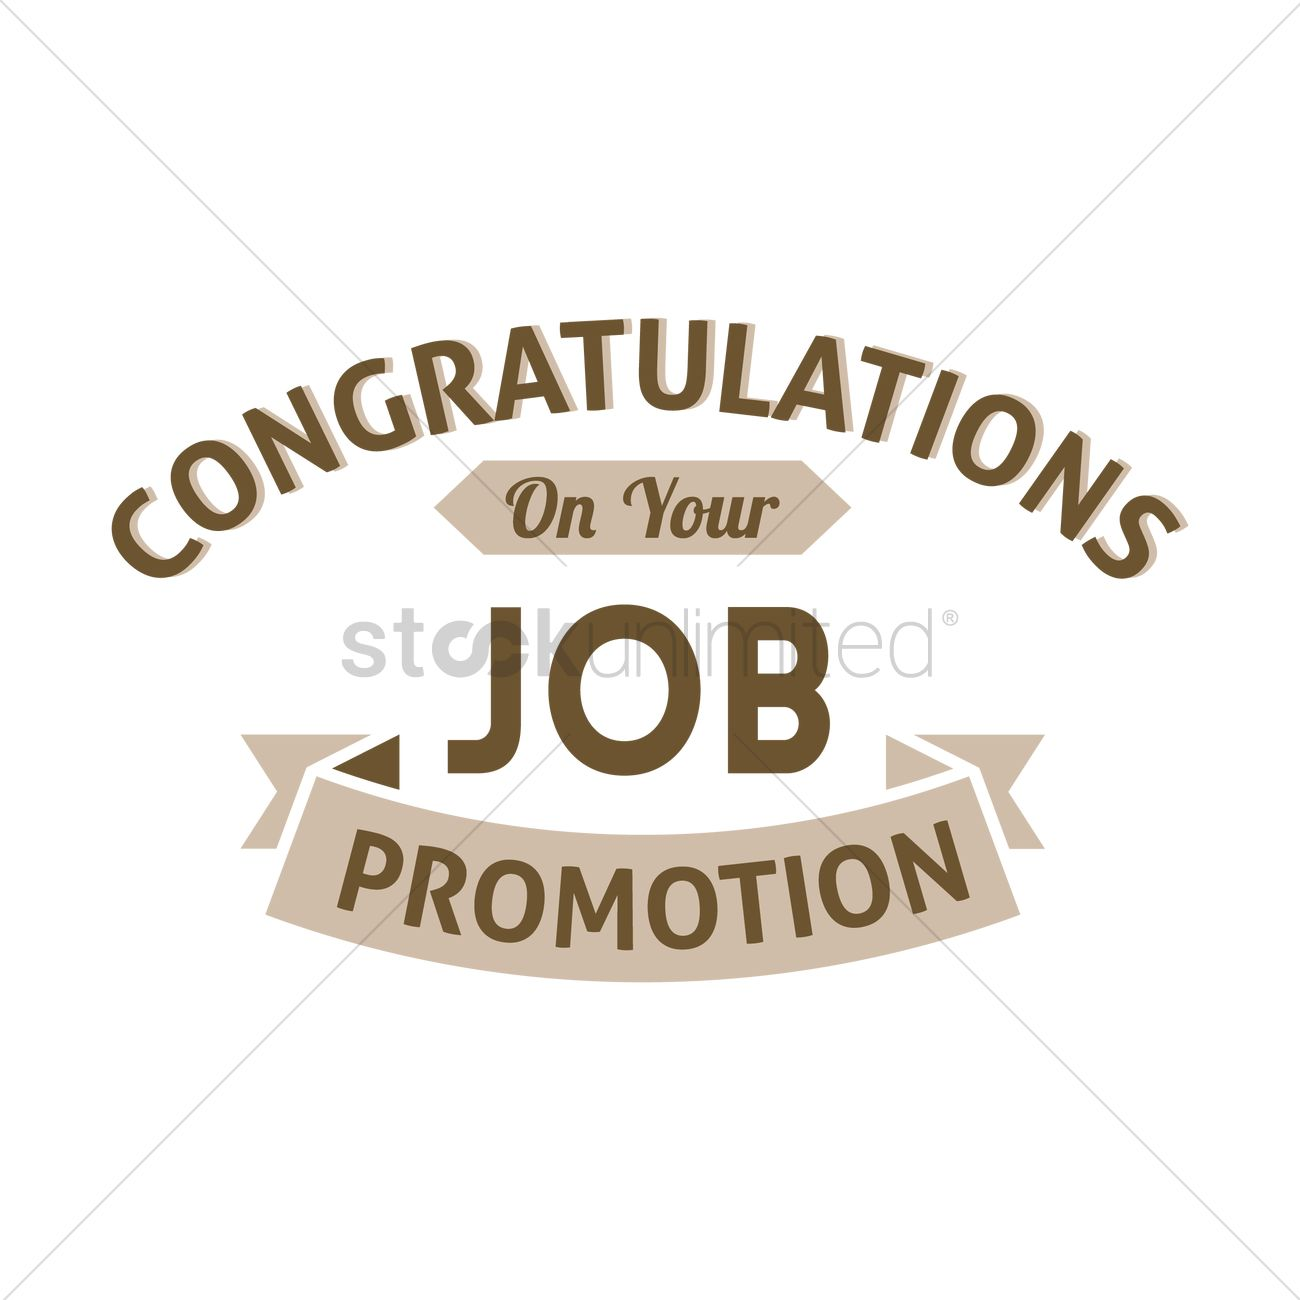 Congratulations on your promotion clipart picture royalty free stock Typography Label Labels Wishes Wish Text Texts Greeting Greetings ... picture royalty free stock